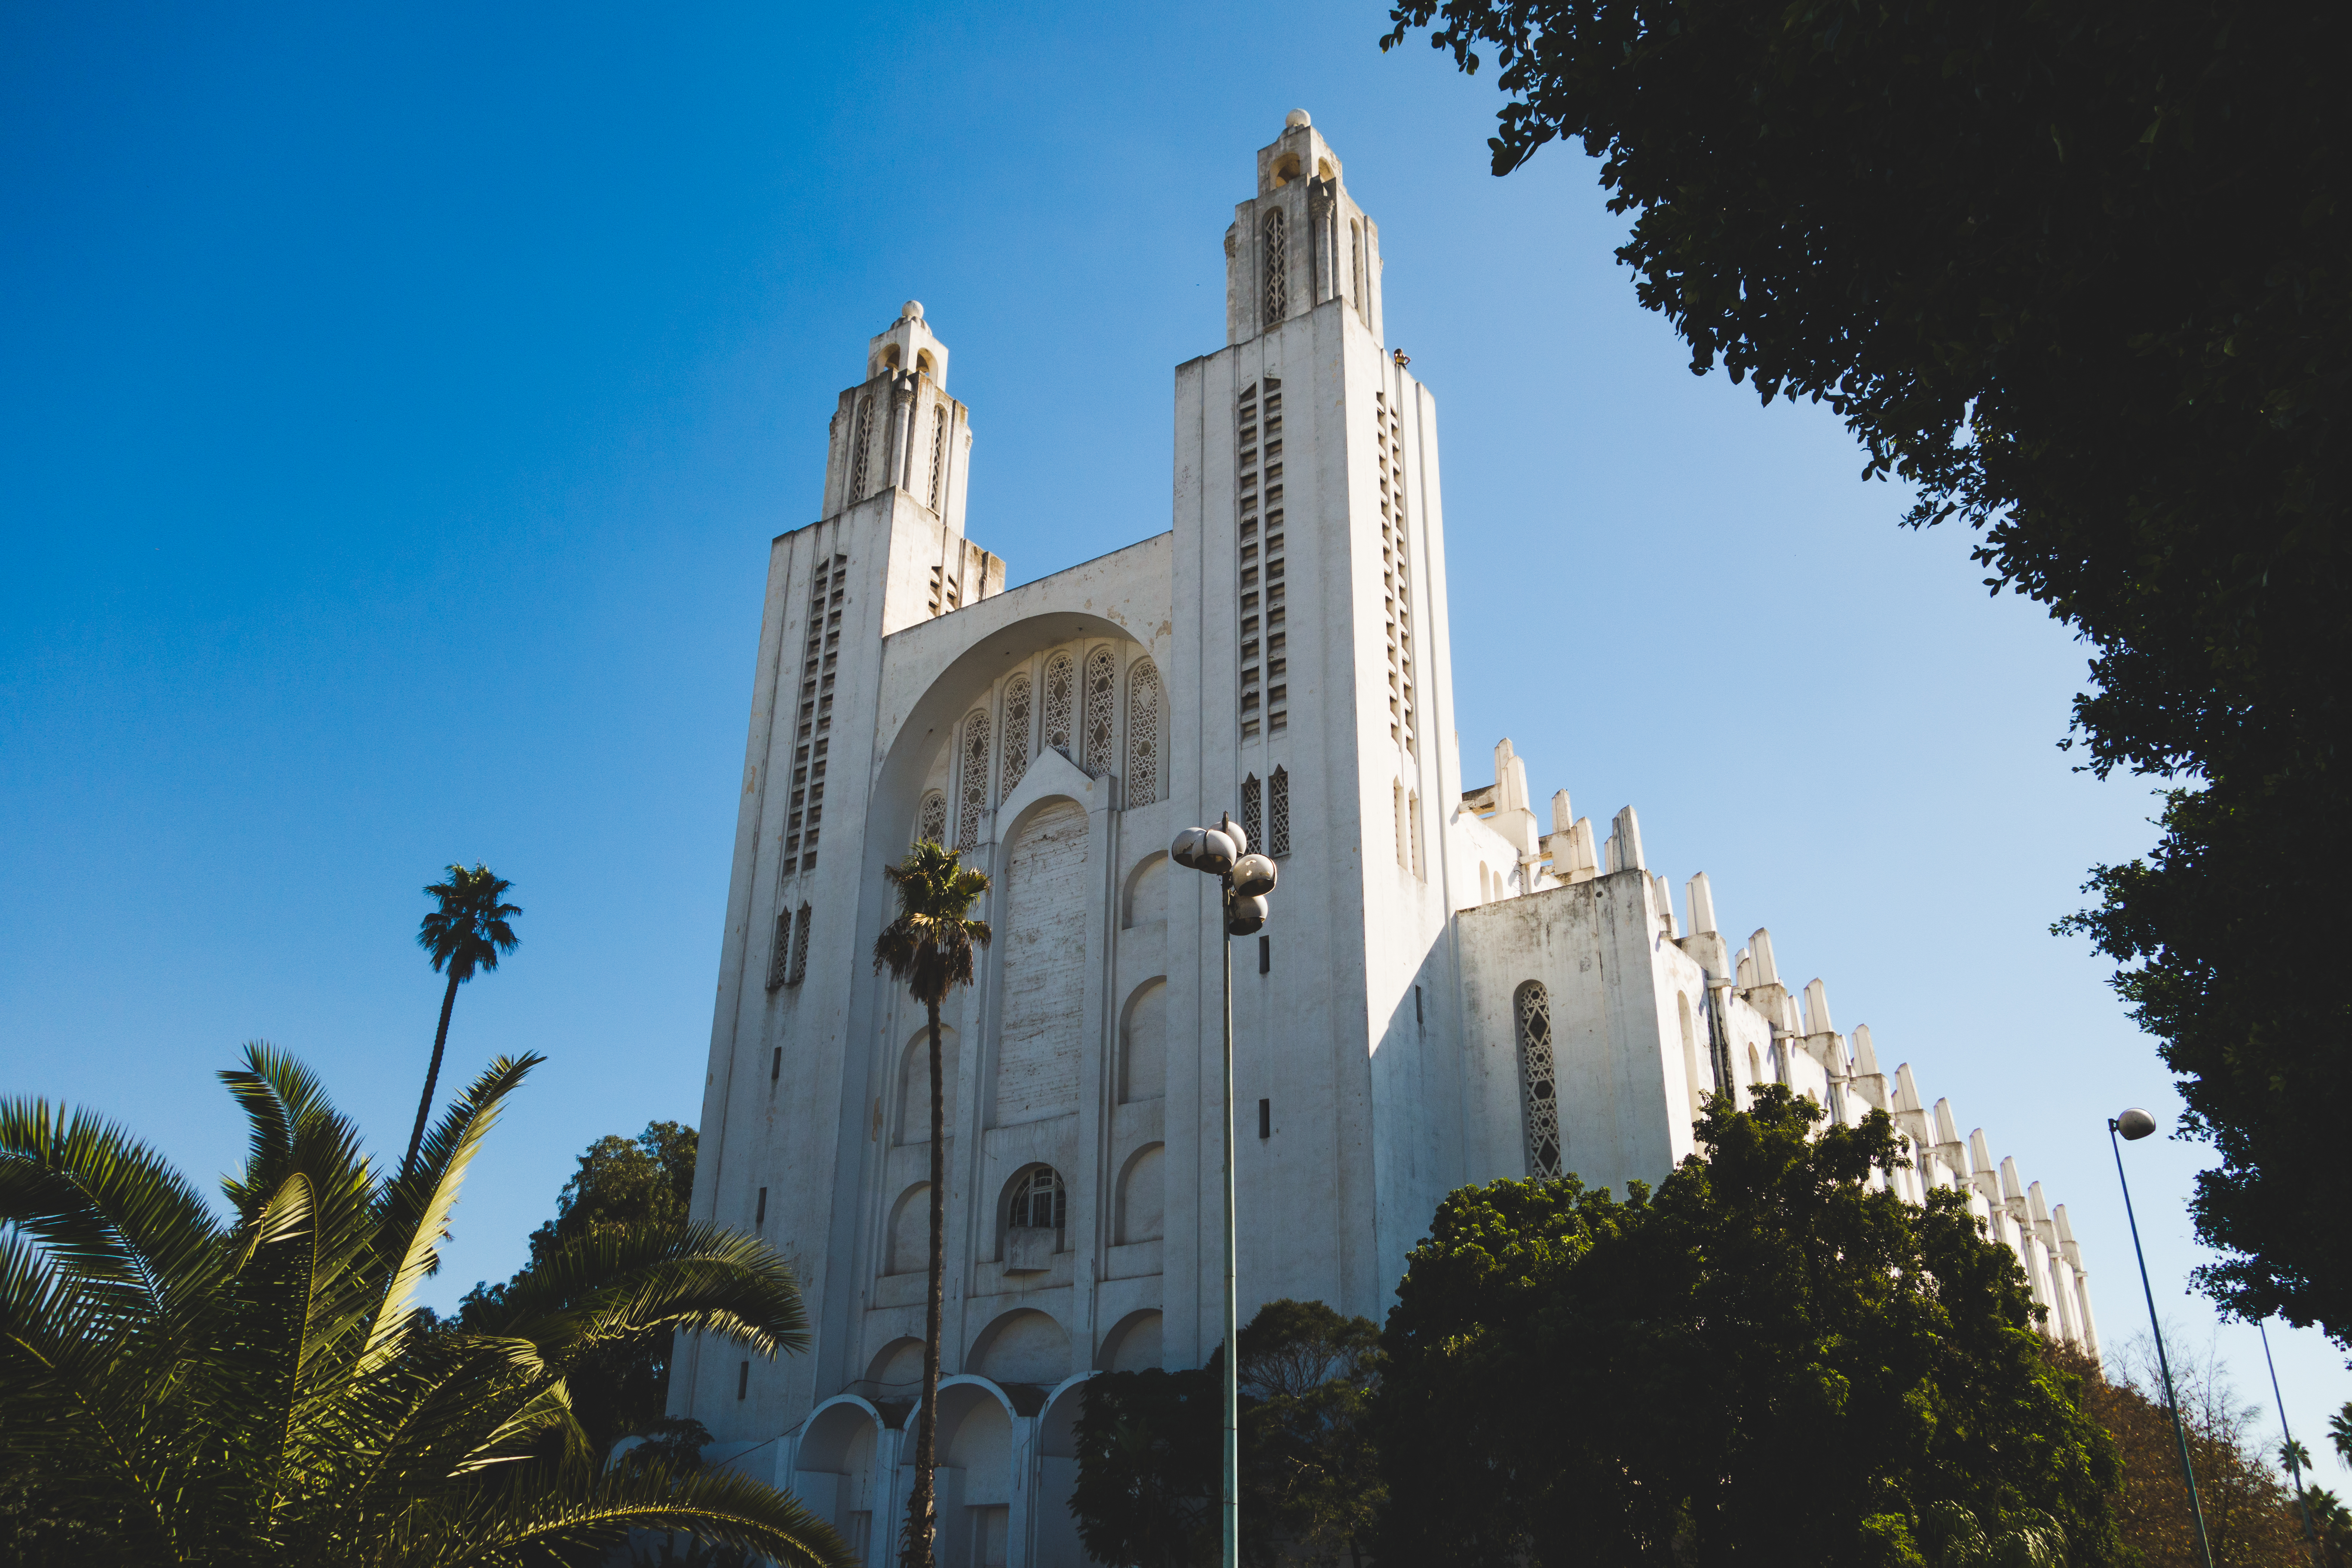 Casablanca Cathedral, or Church of the Sacred Heart of Jesus, is a former Roman Catholic church located in Casablanca, Morocco.